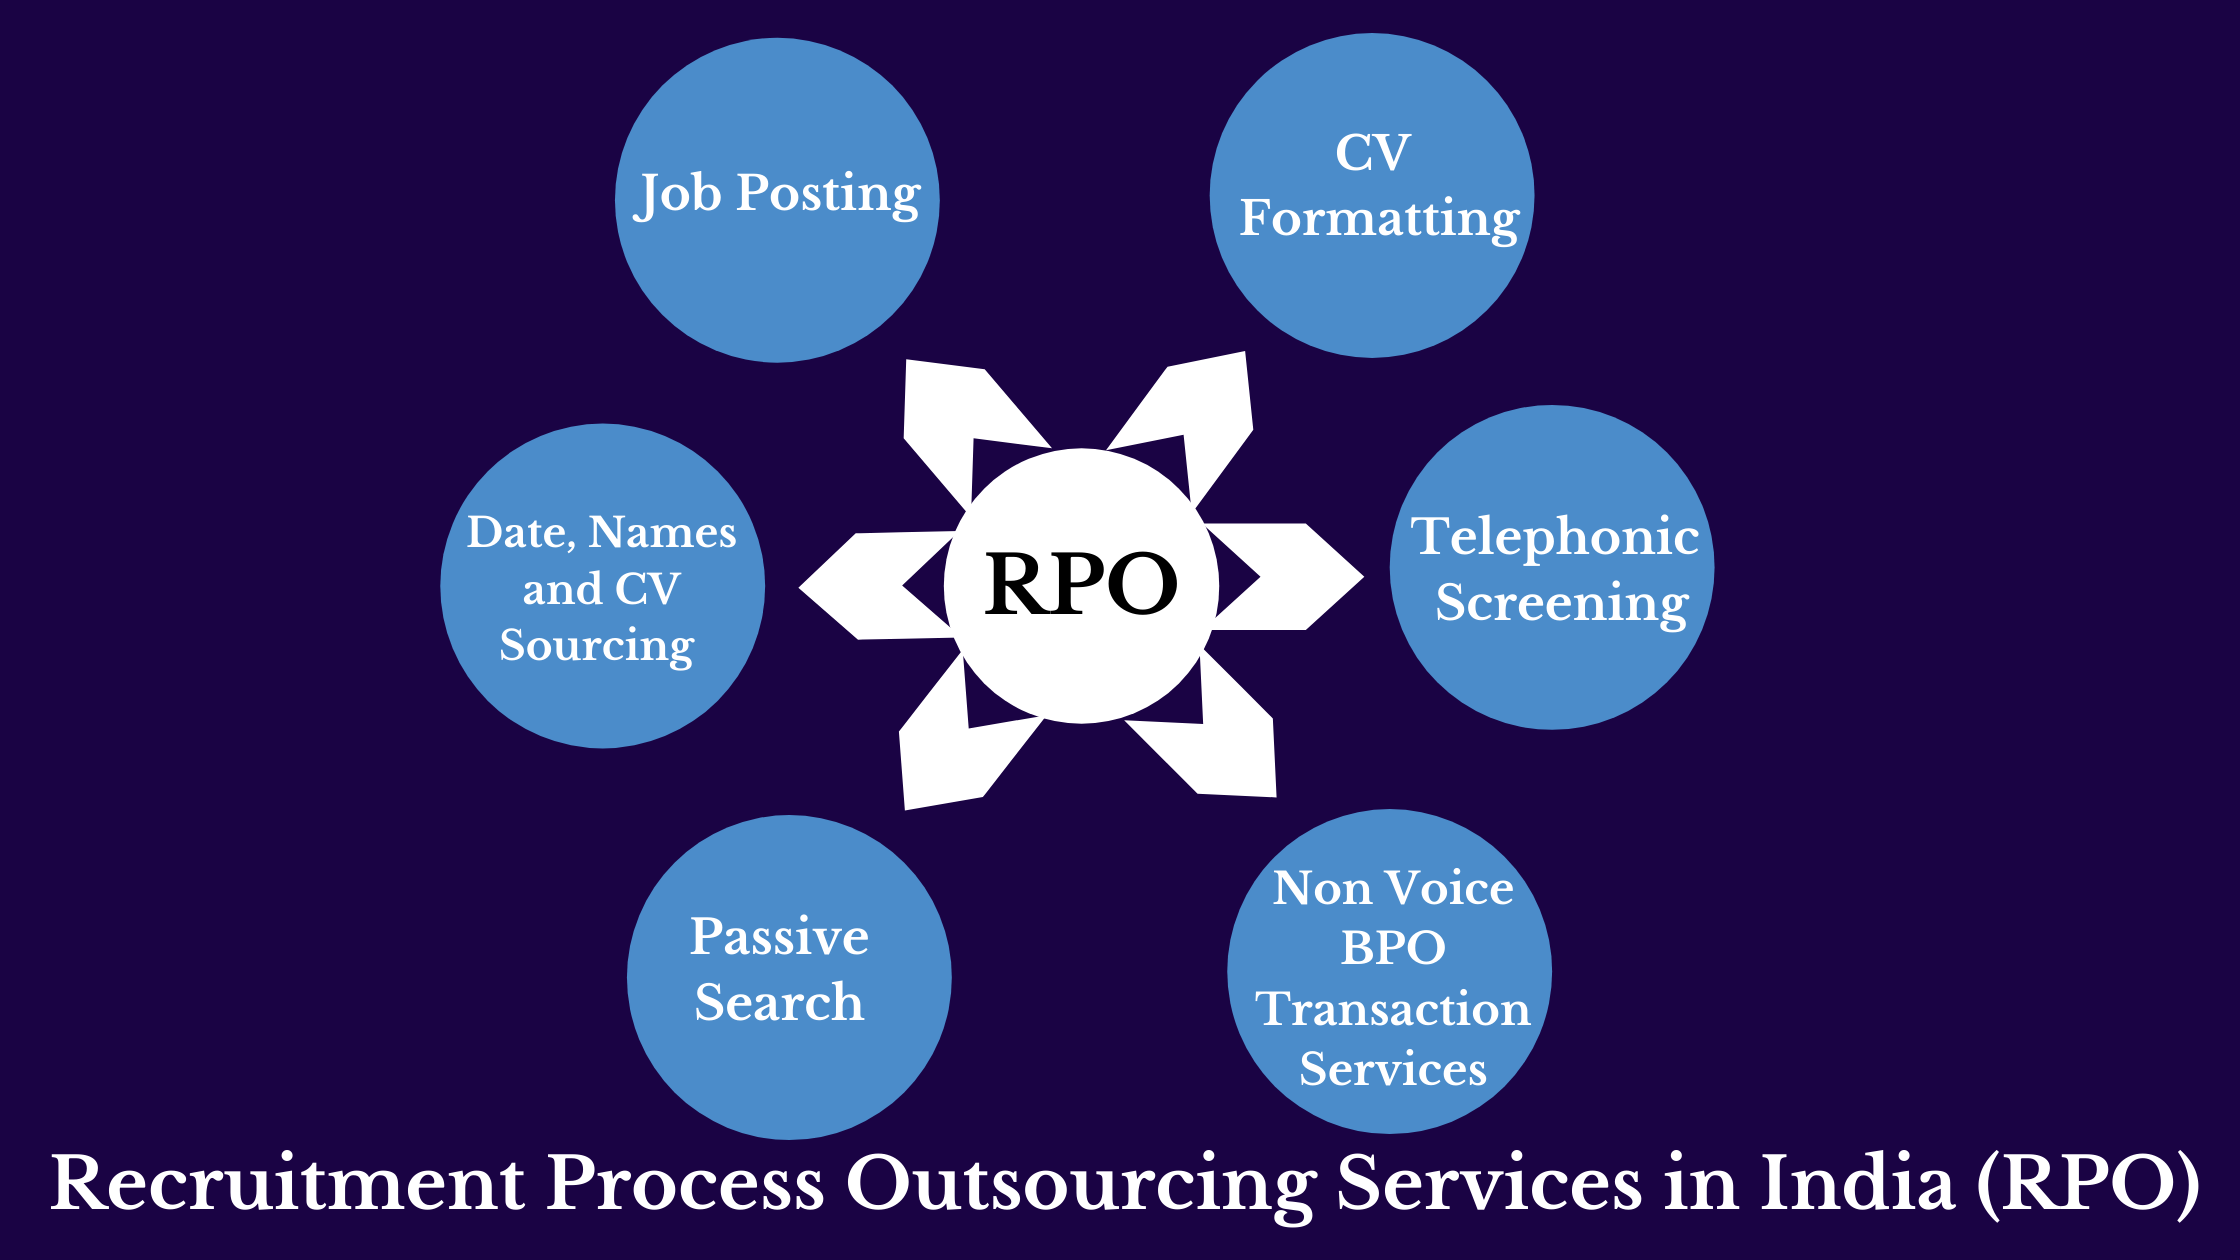 Recruitment process outsourcing services in India (RPO)